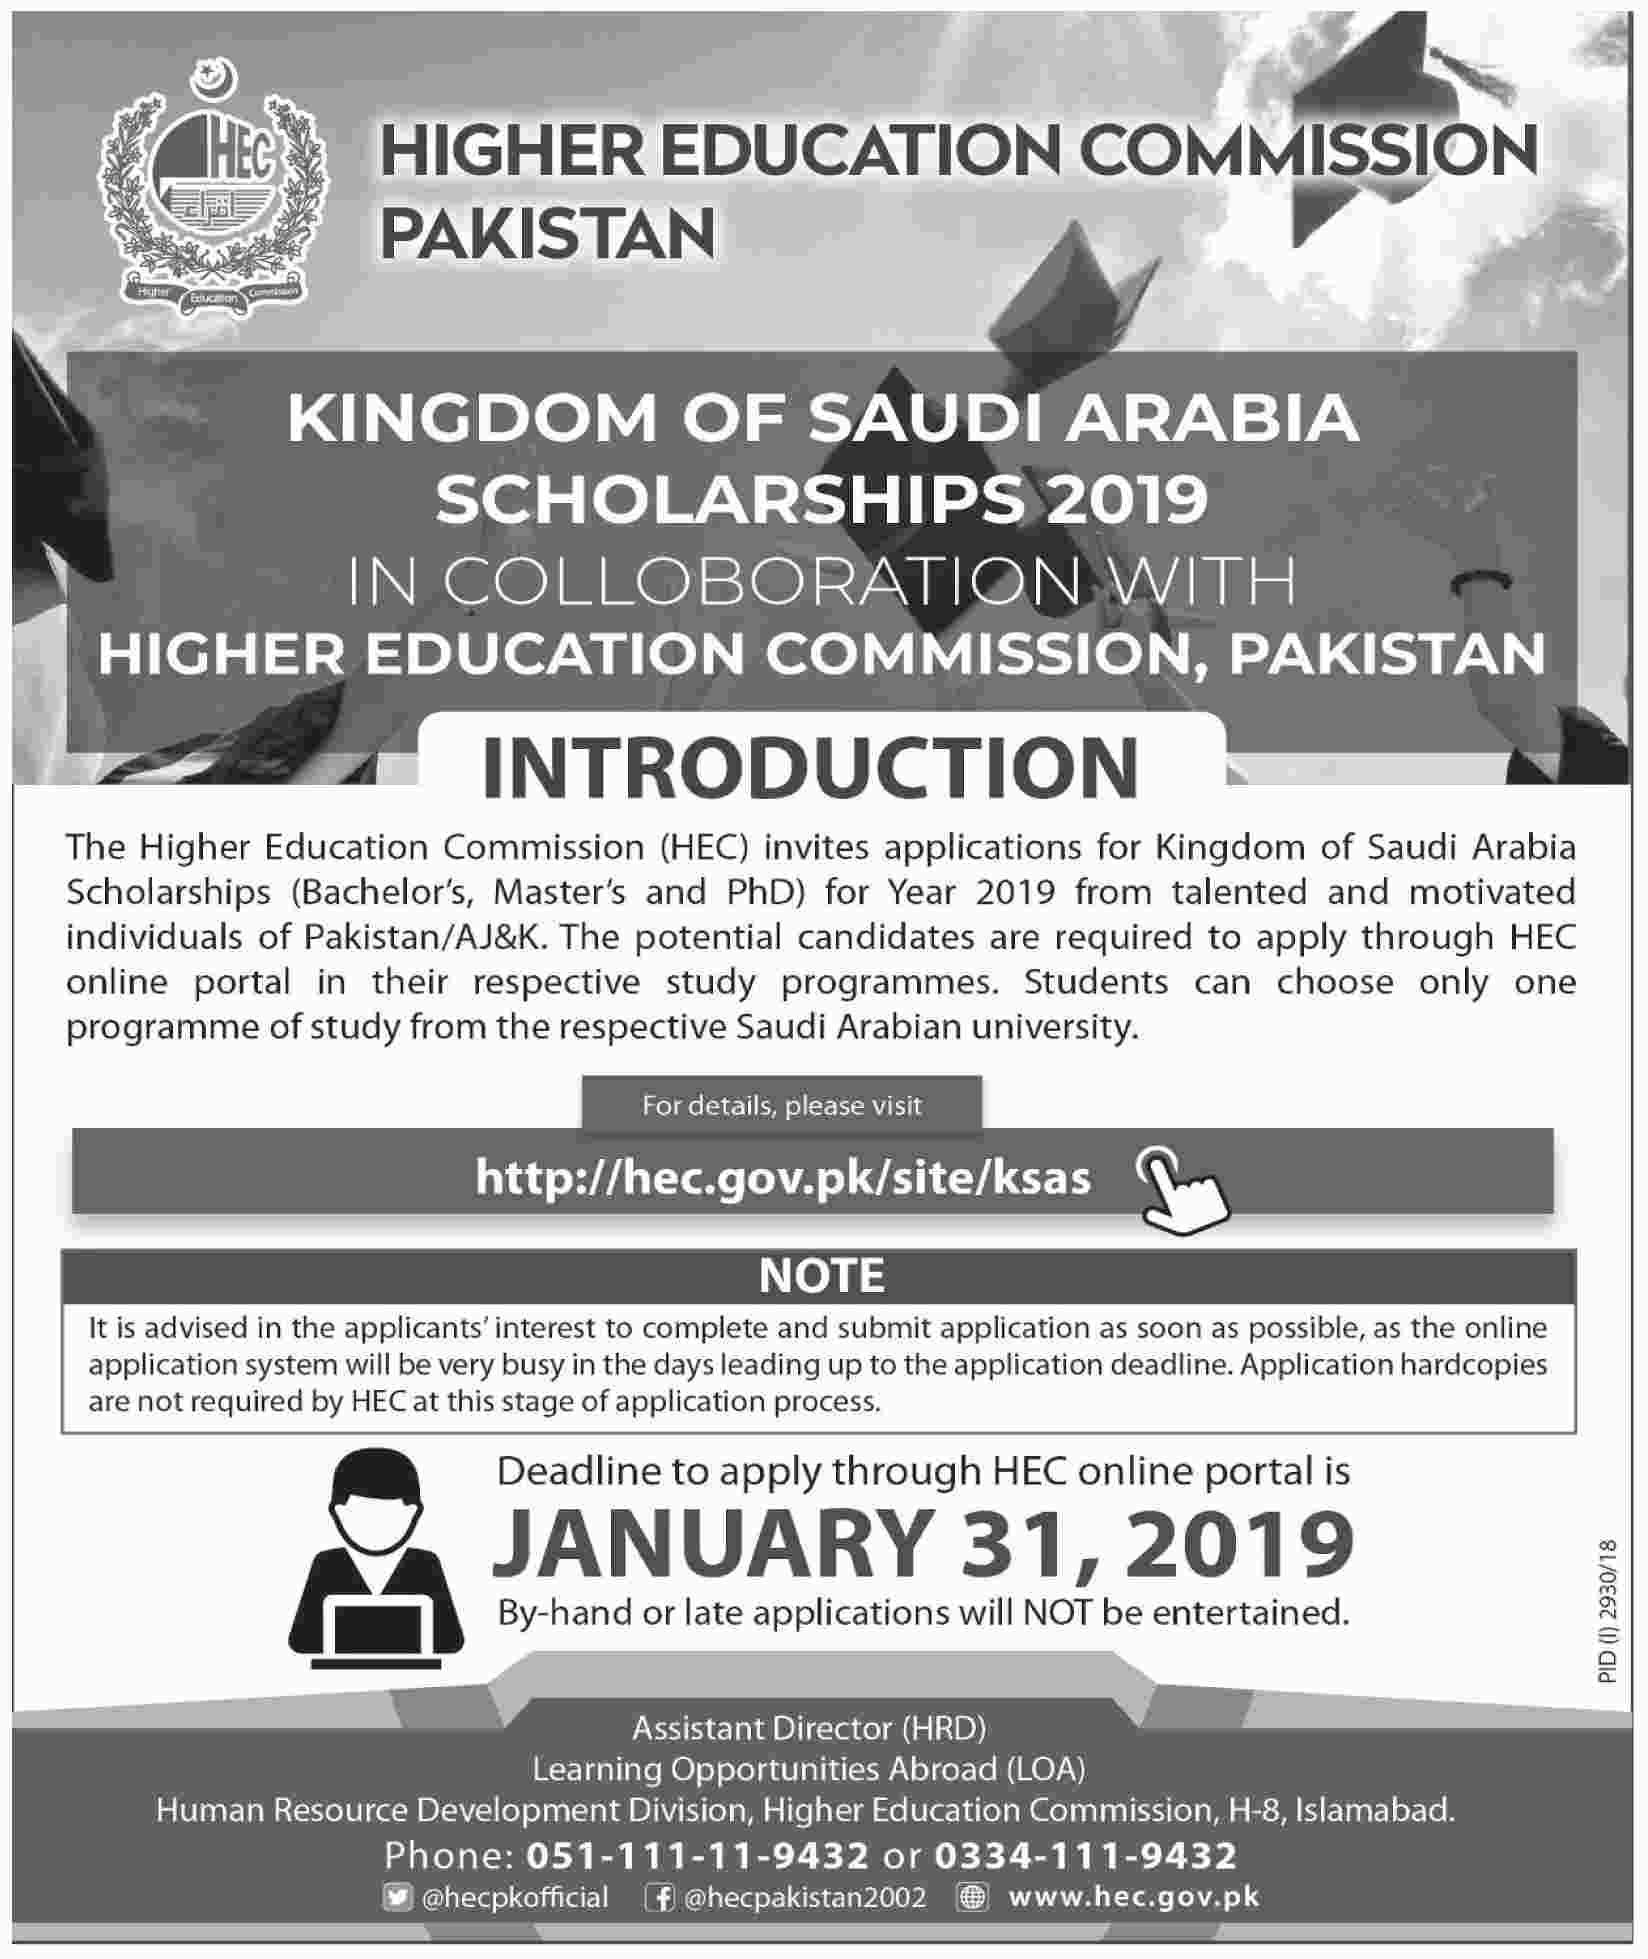 Kingdom of Saudi Arabia Scholarships 2019 in Collaboration with Higher Education Commission, Pakistan